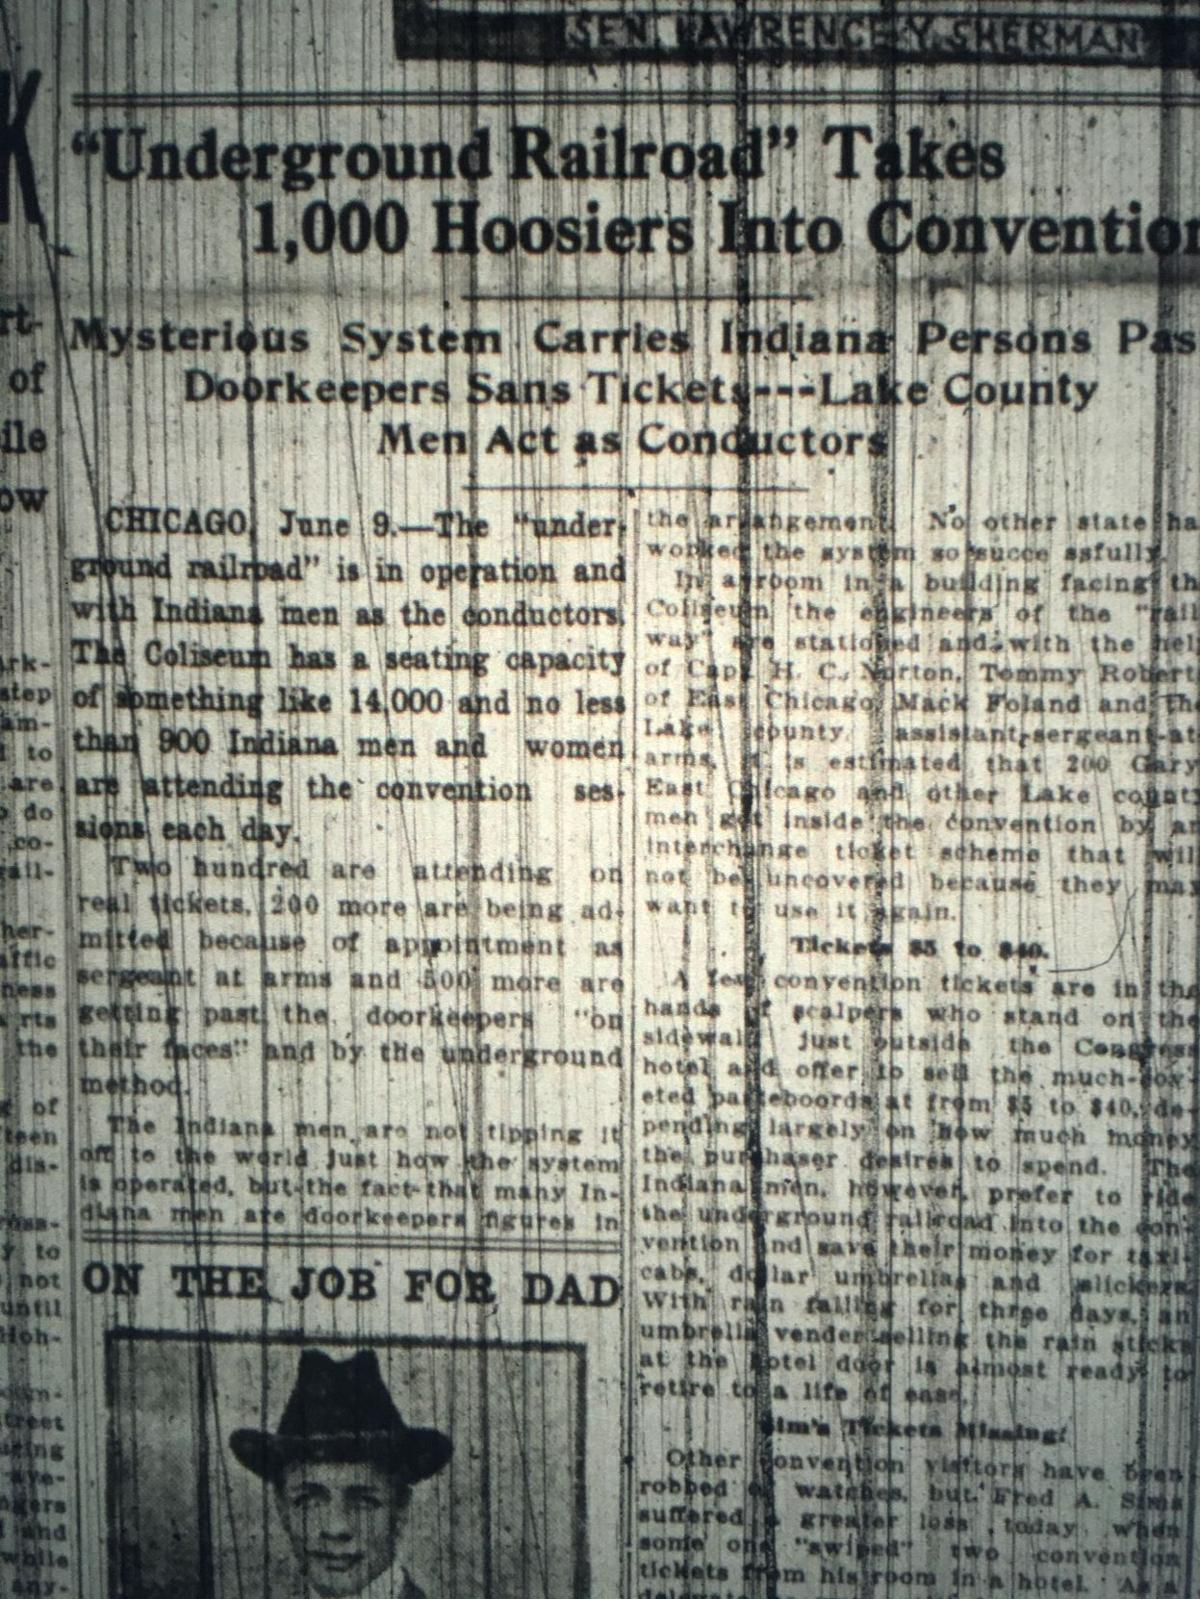 1916 conventions in Chicago